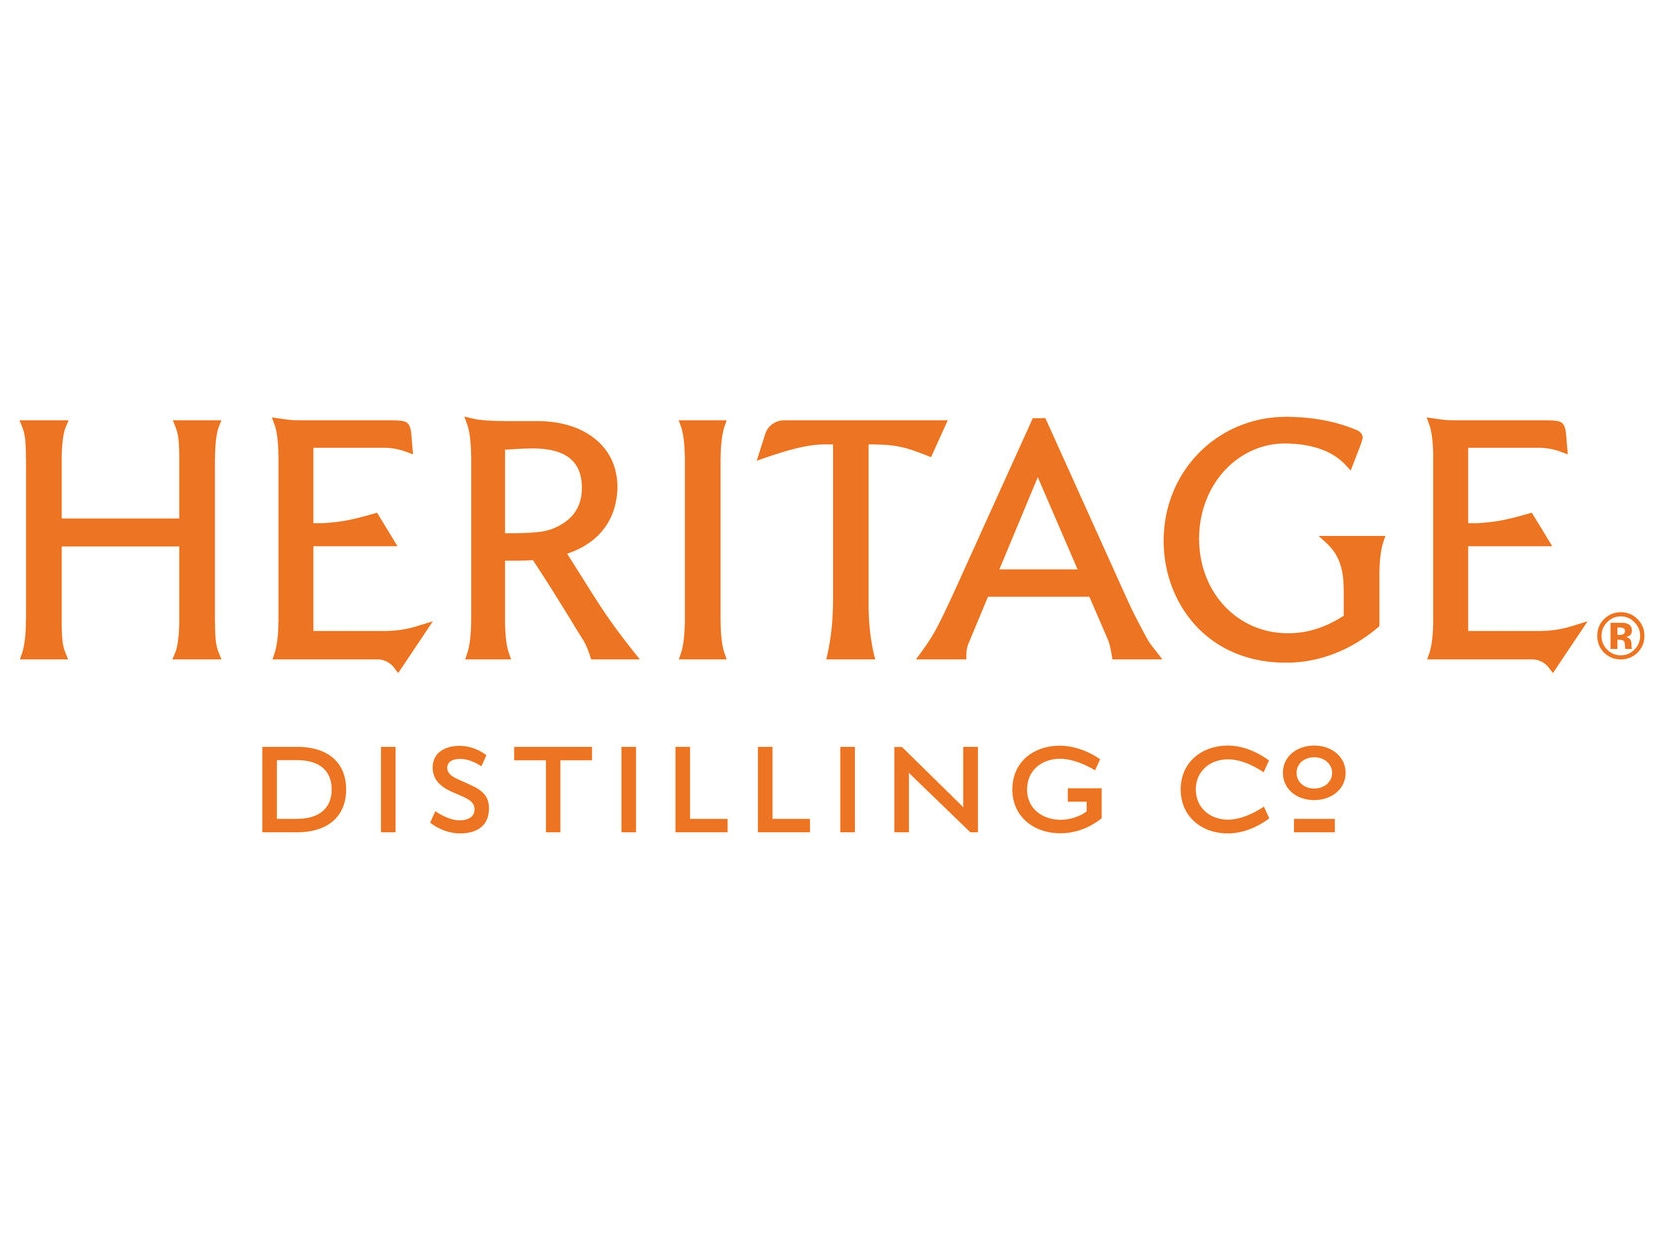 Heritage_Wordmark_Orange (1).jpg